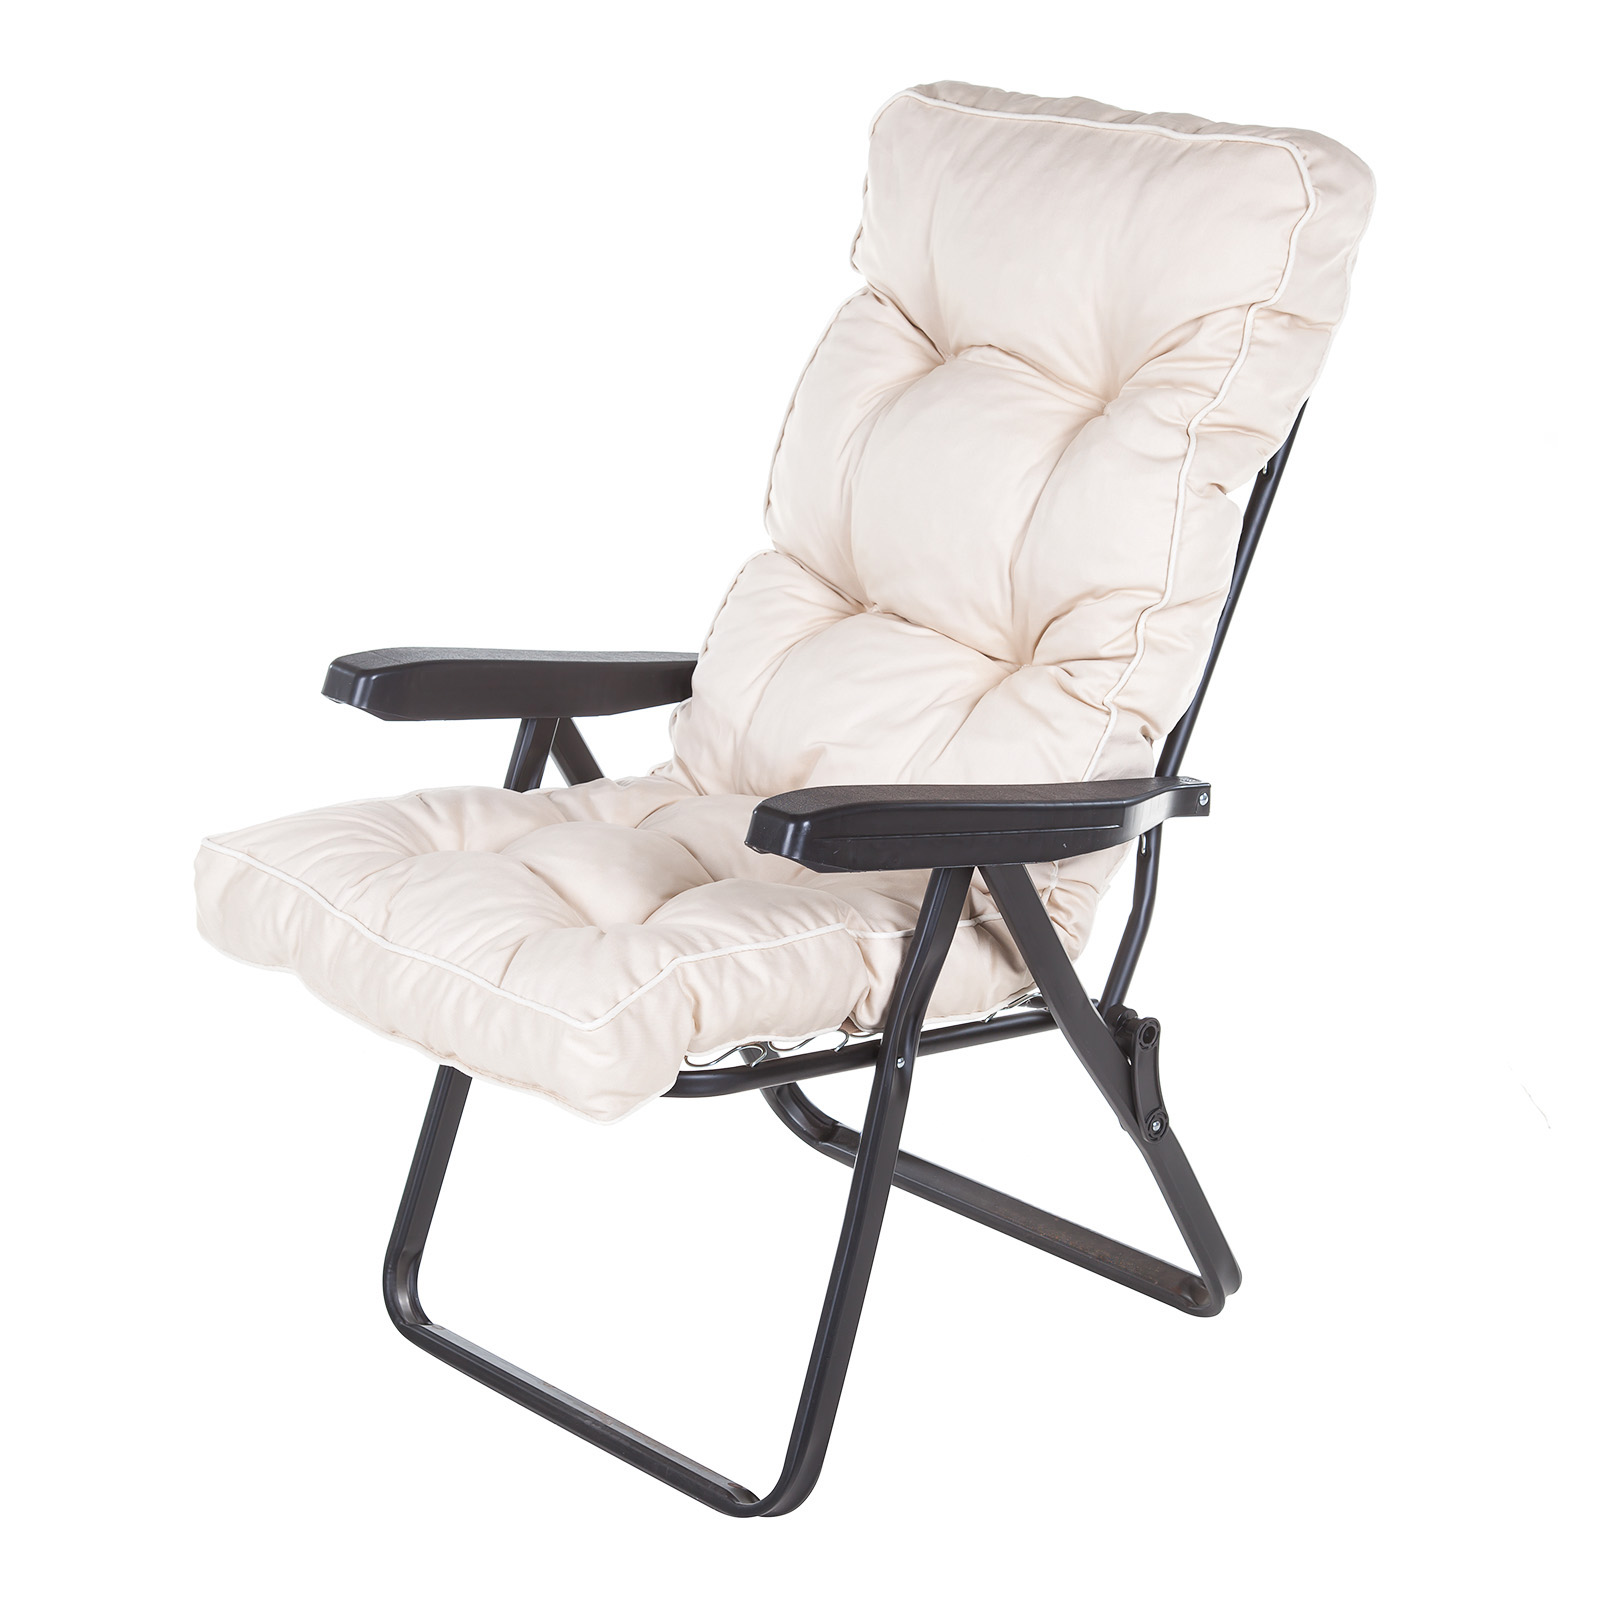 Alfresia Garden Recliner Chair With Luxury Cushion And Black Frame EBay